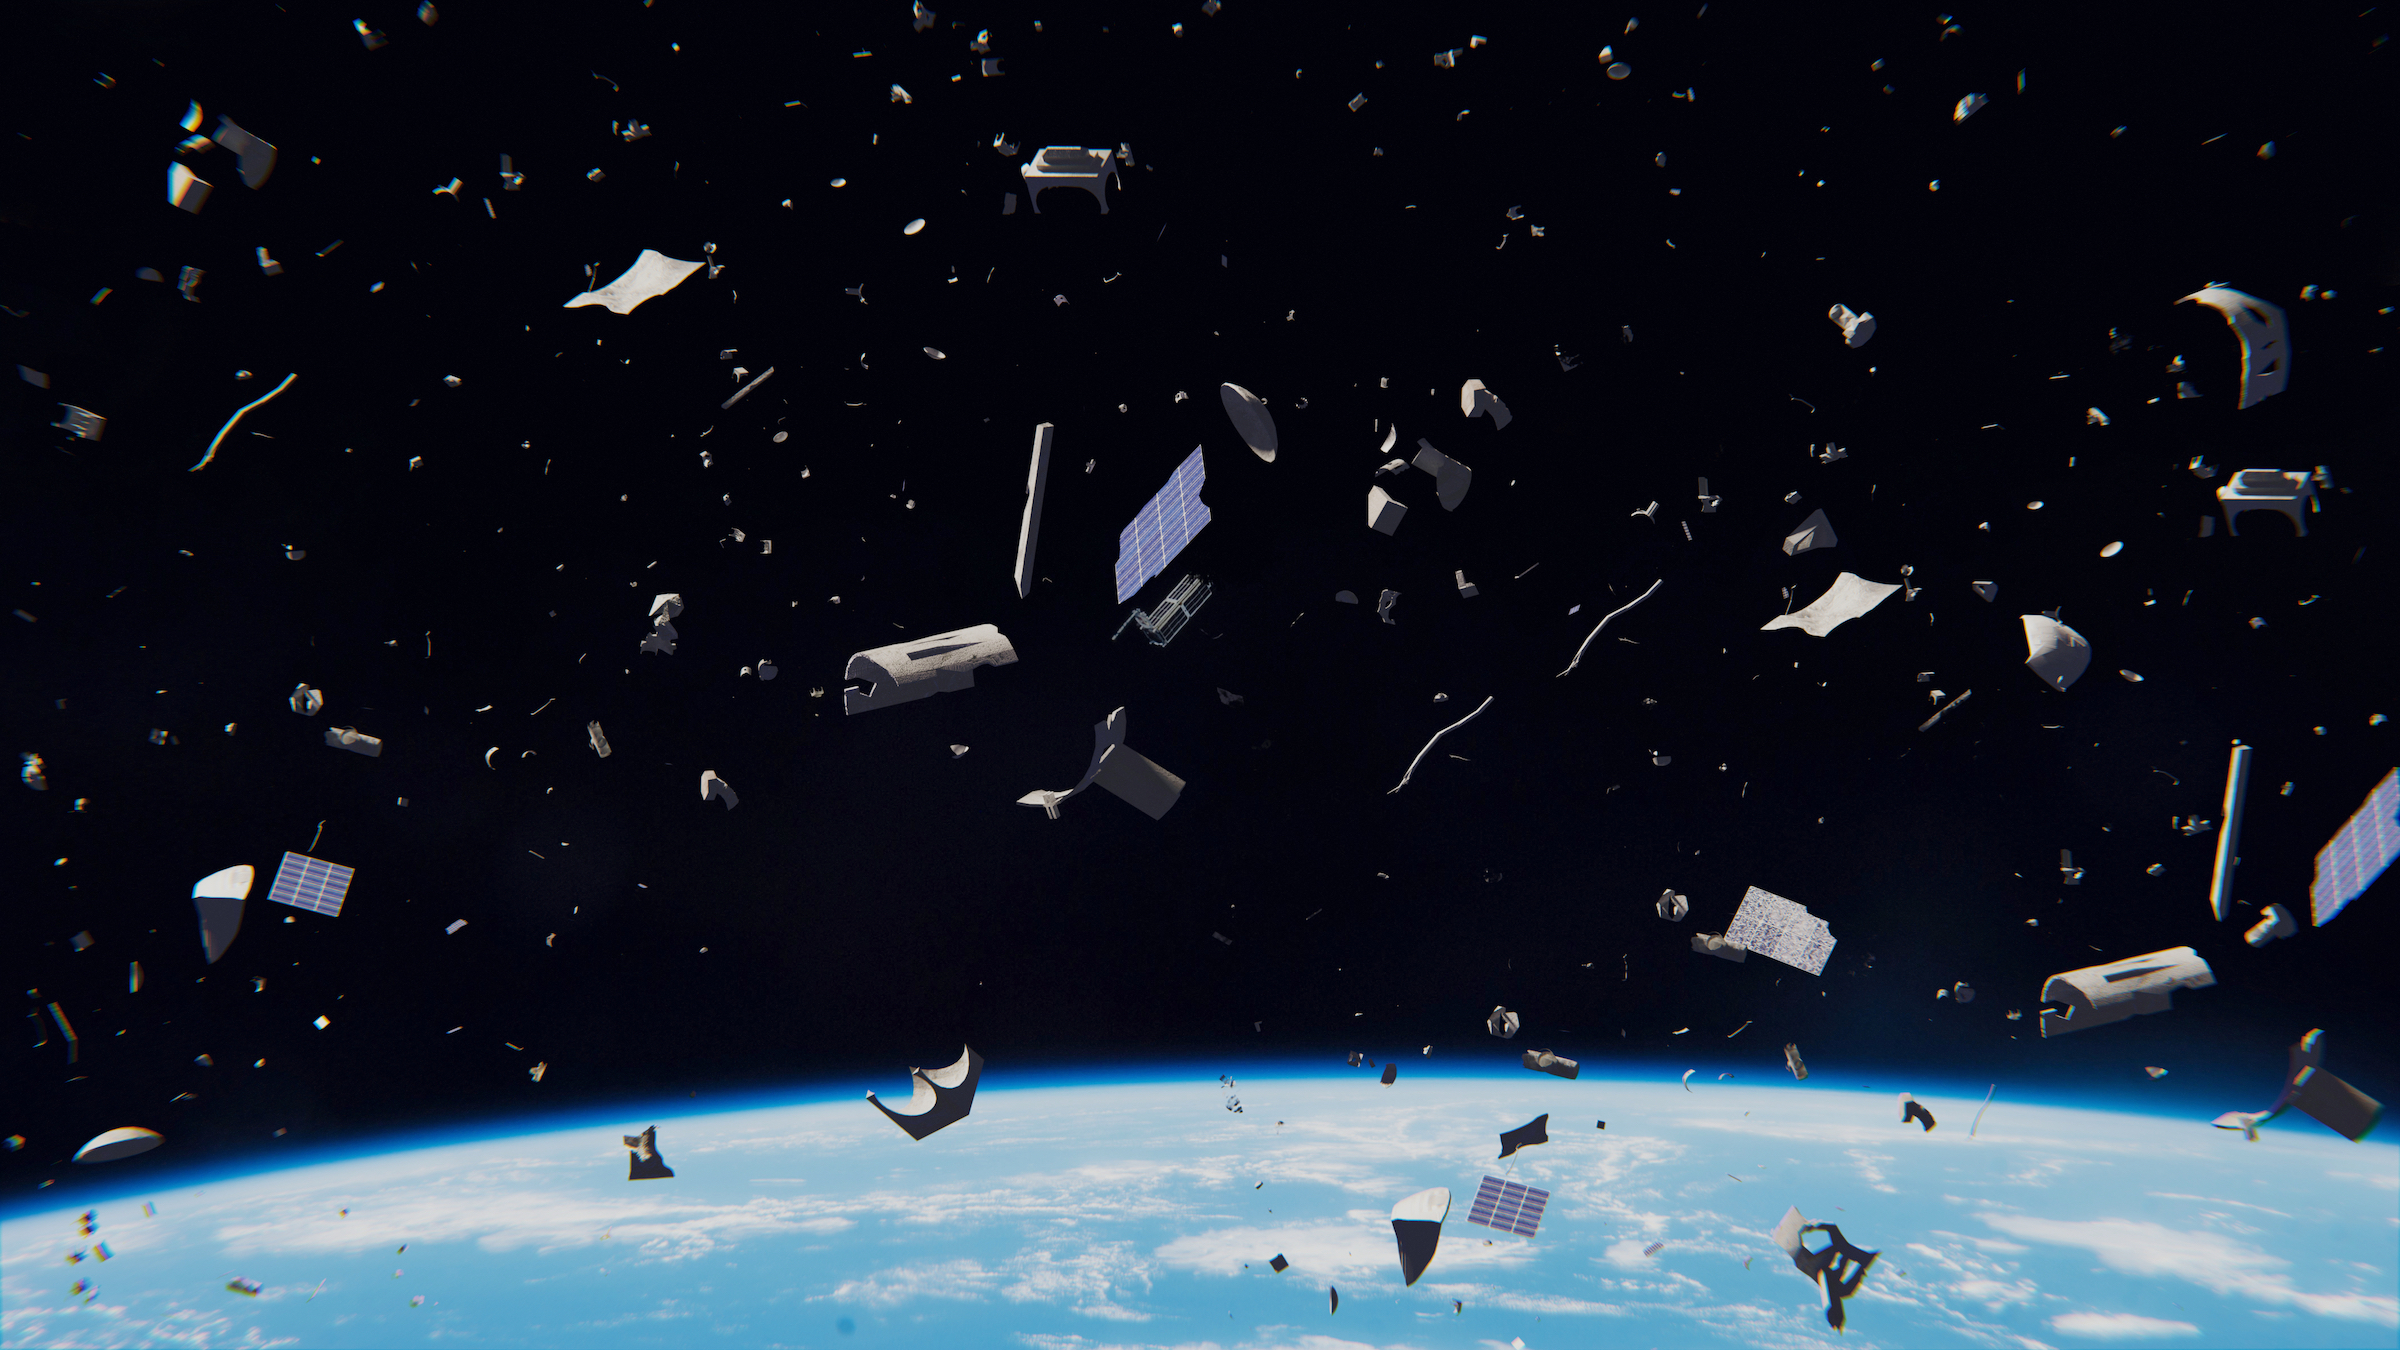 How do tiny pieces of space junk cause incredible damage? | Live Science